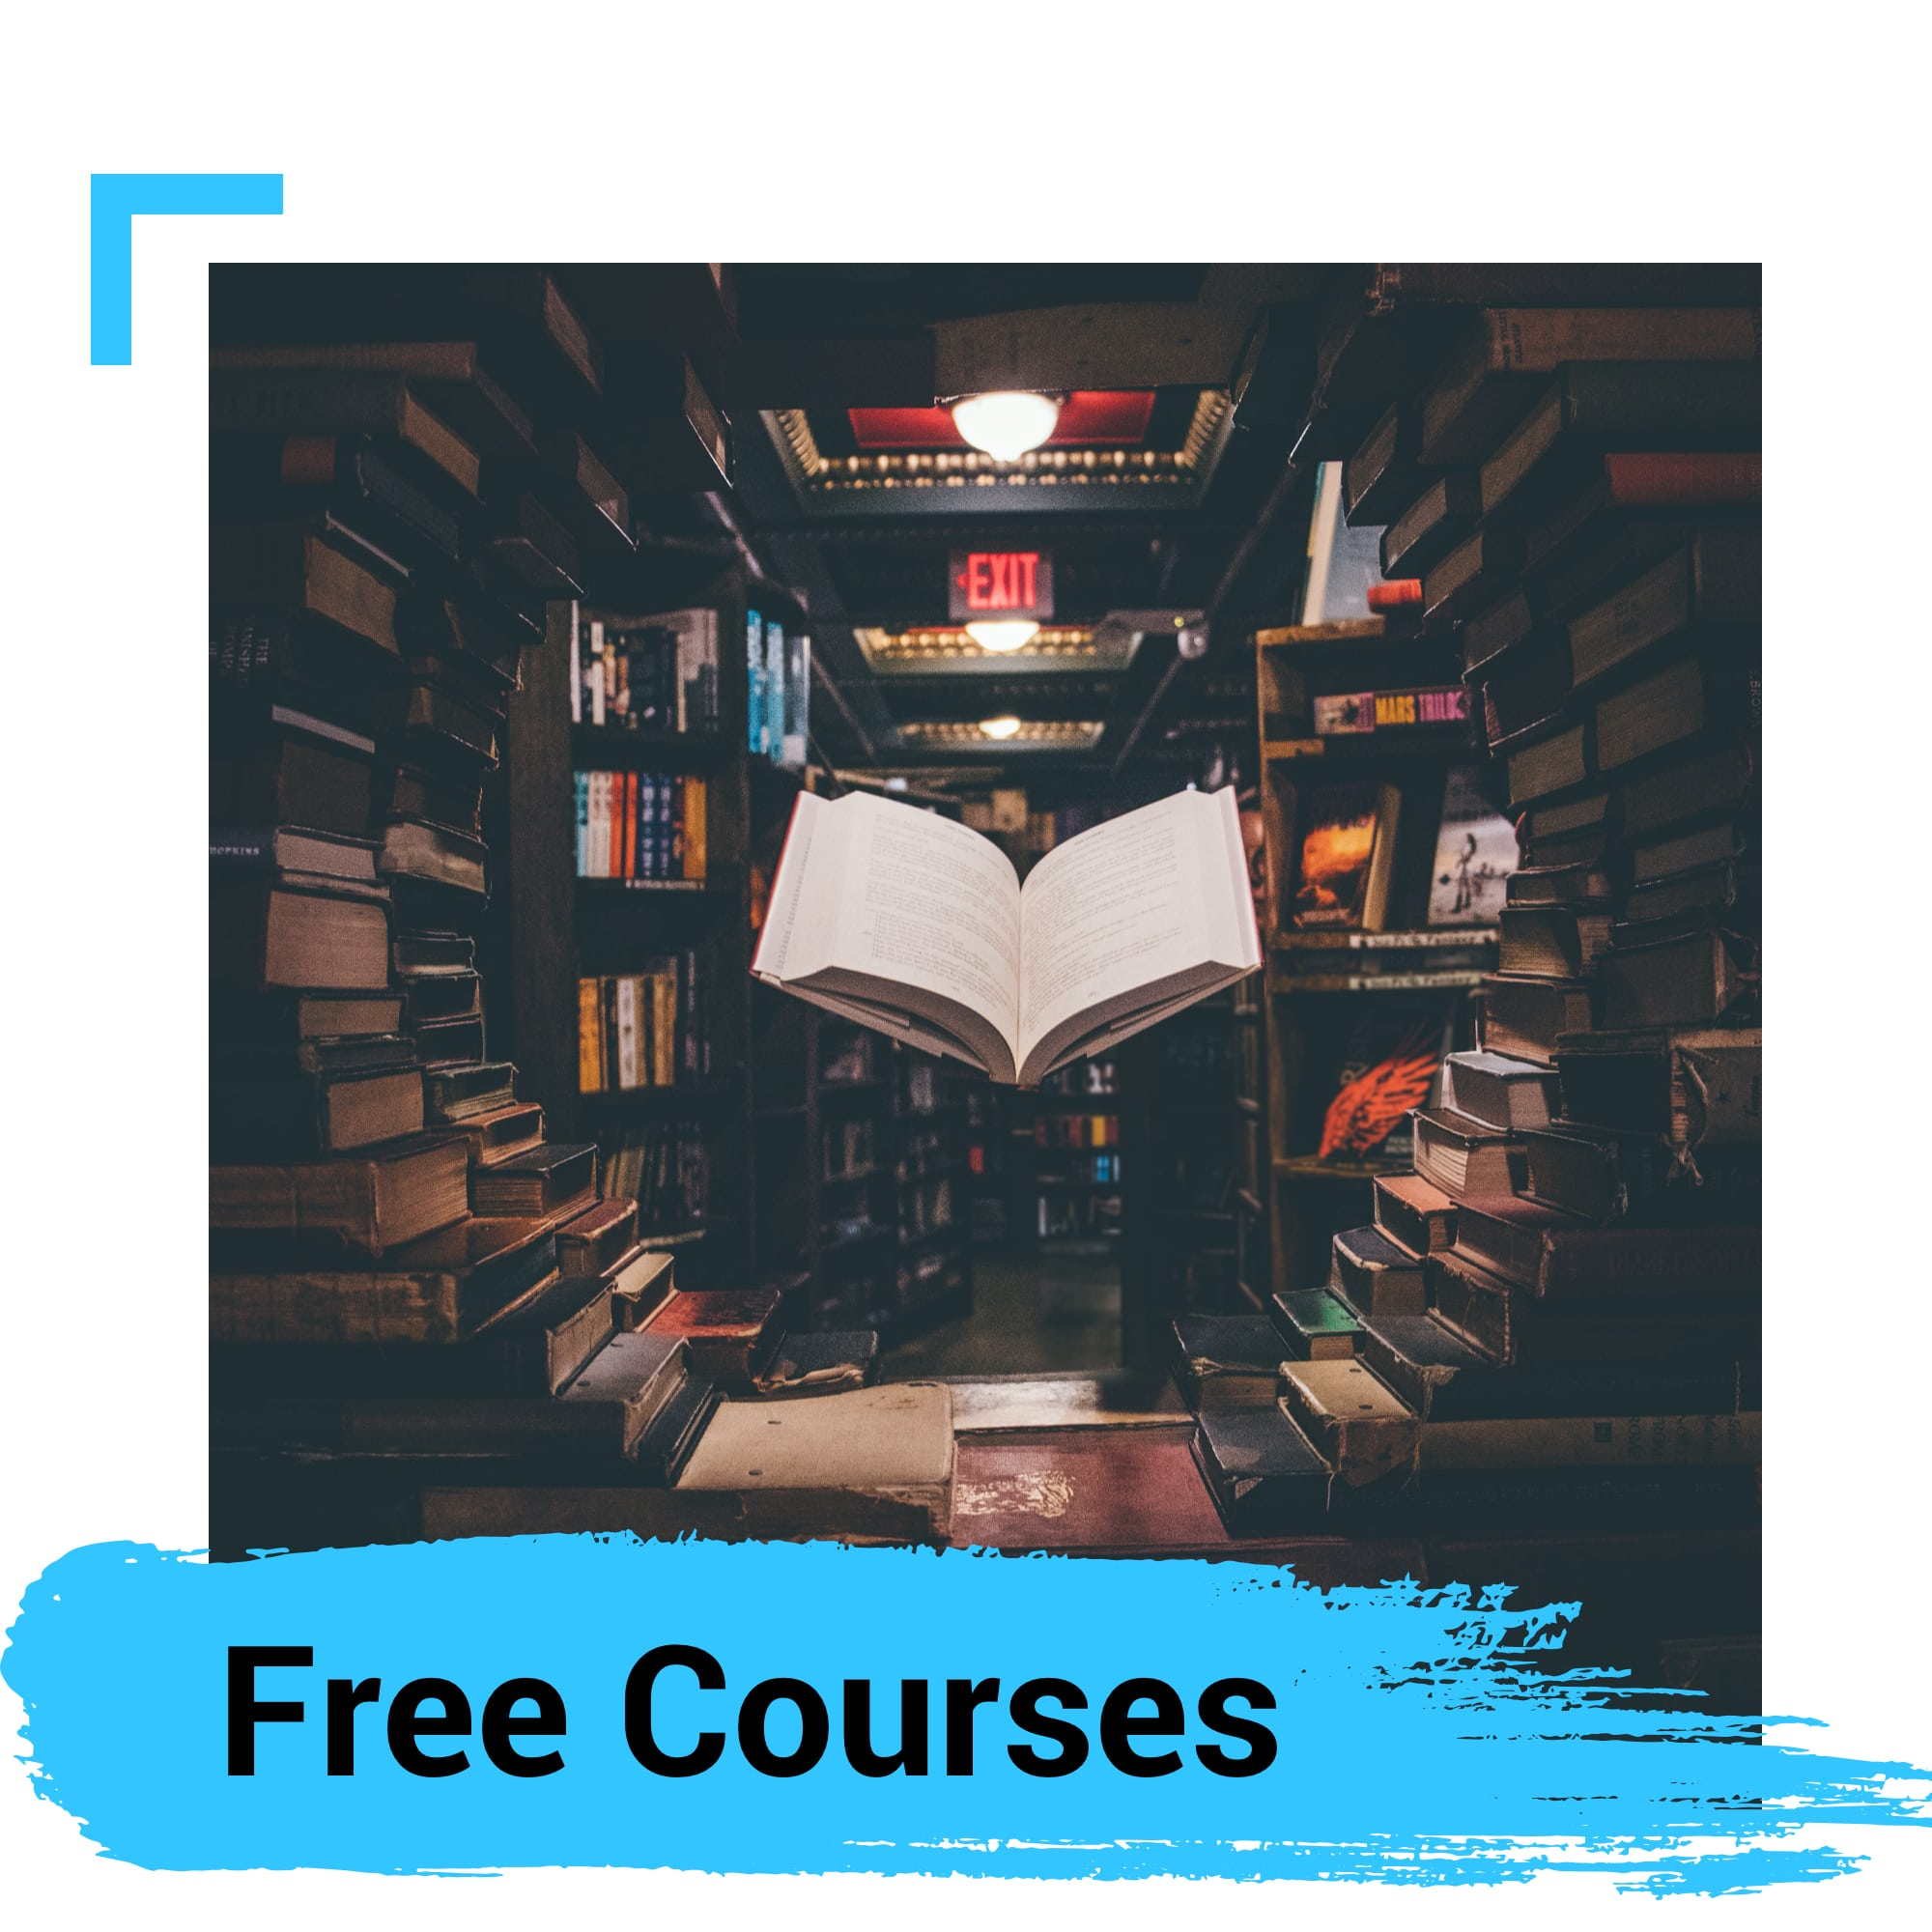 Free Courses from Universities